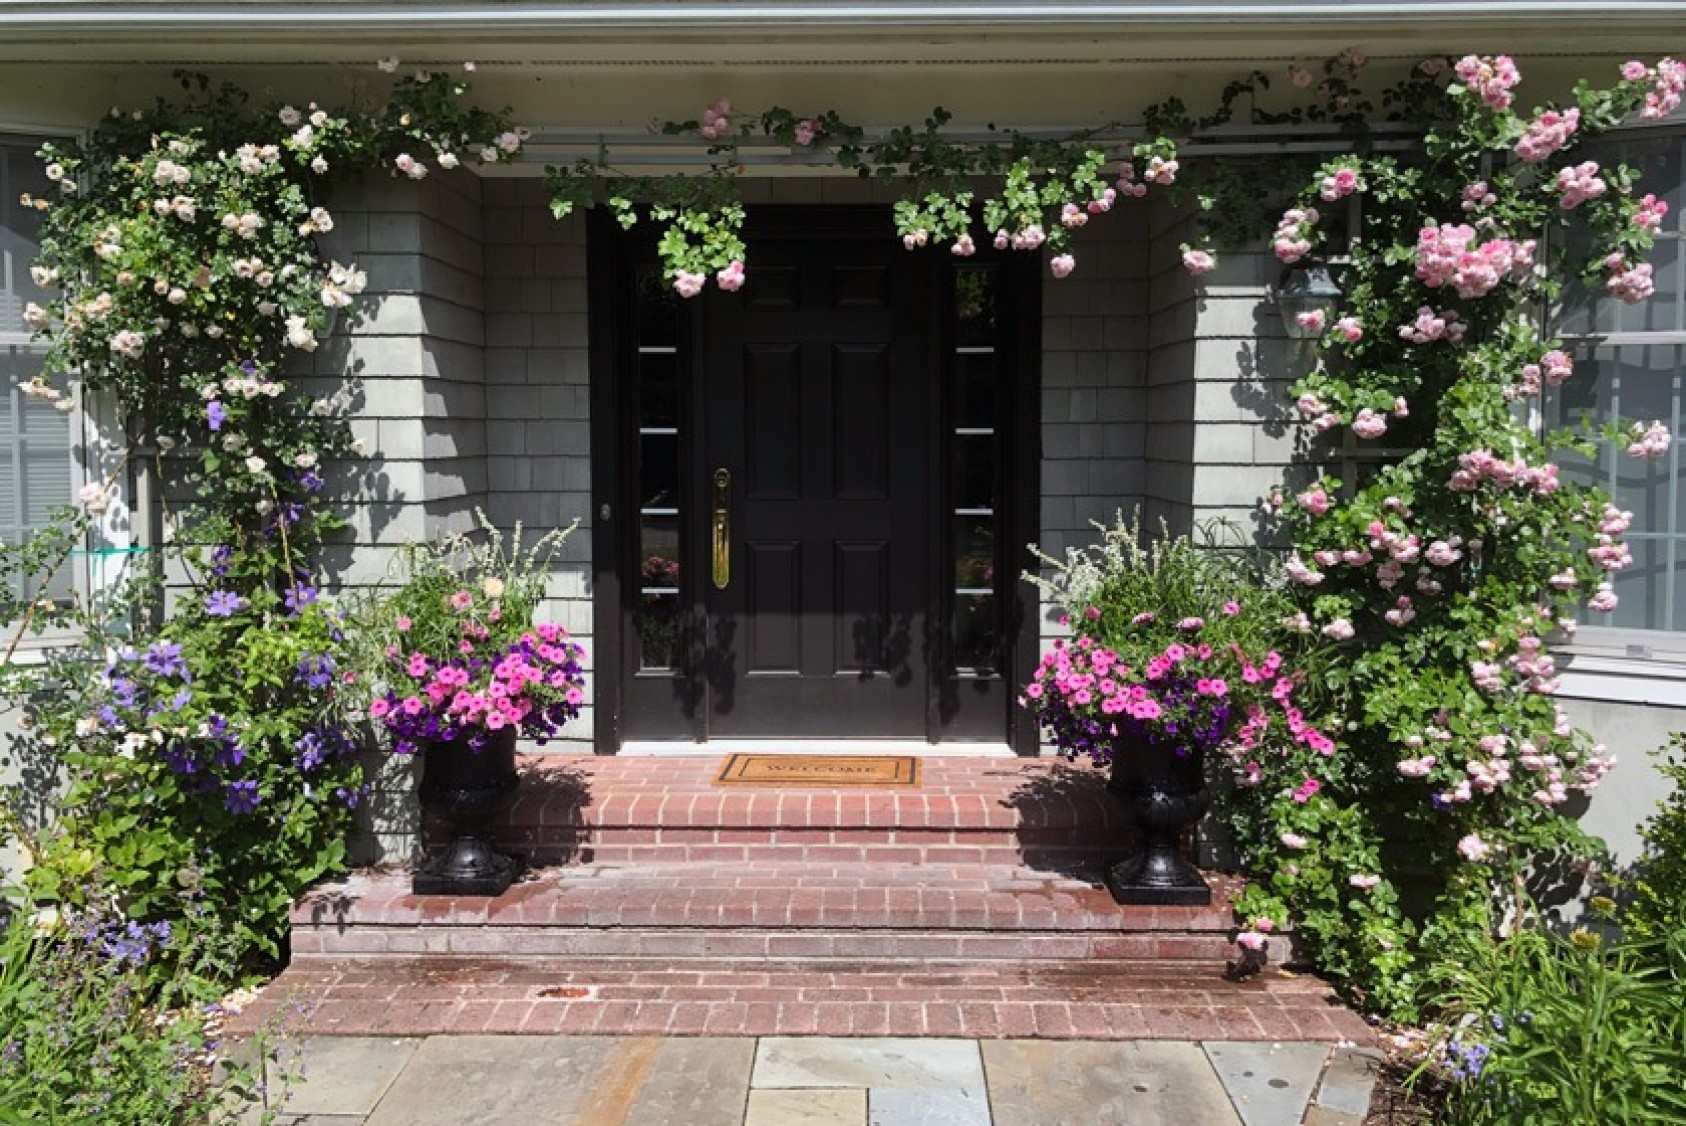 """Fred began gardening in earnest when he and his wife bought a house with about an acre of established, """"but rather untended"""" gardens in 2016. Here are the roses framing his front door in June 2020."""